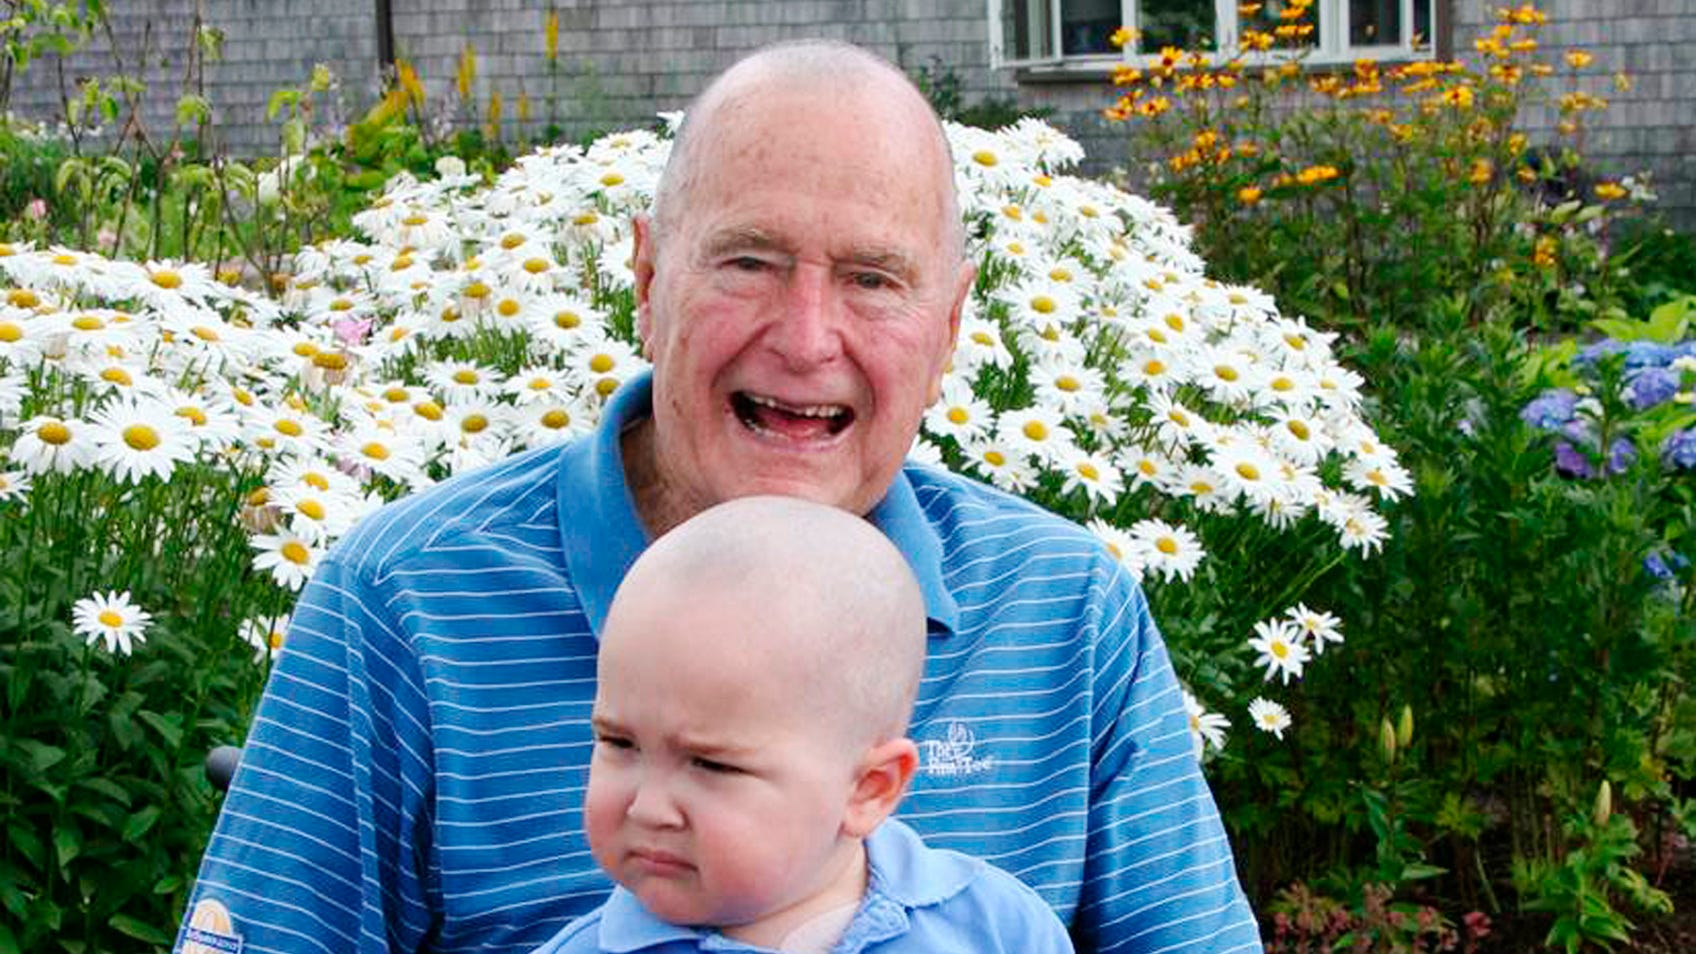 George H.W. Bush shaved his head once to support a Secret Service agent's son with leukemia